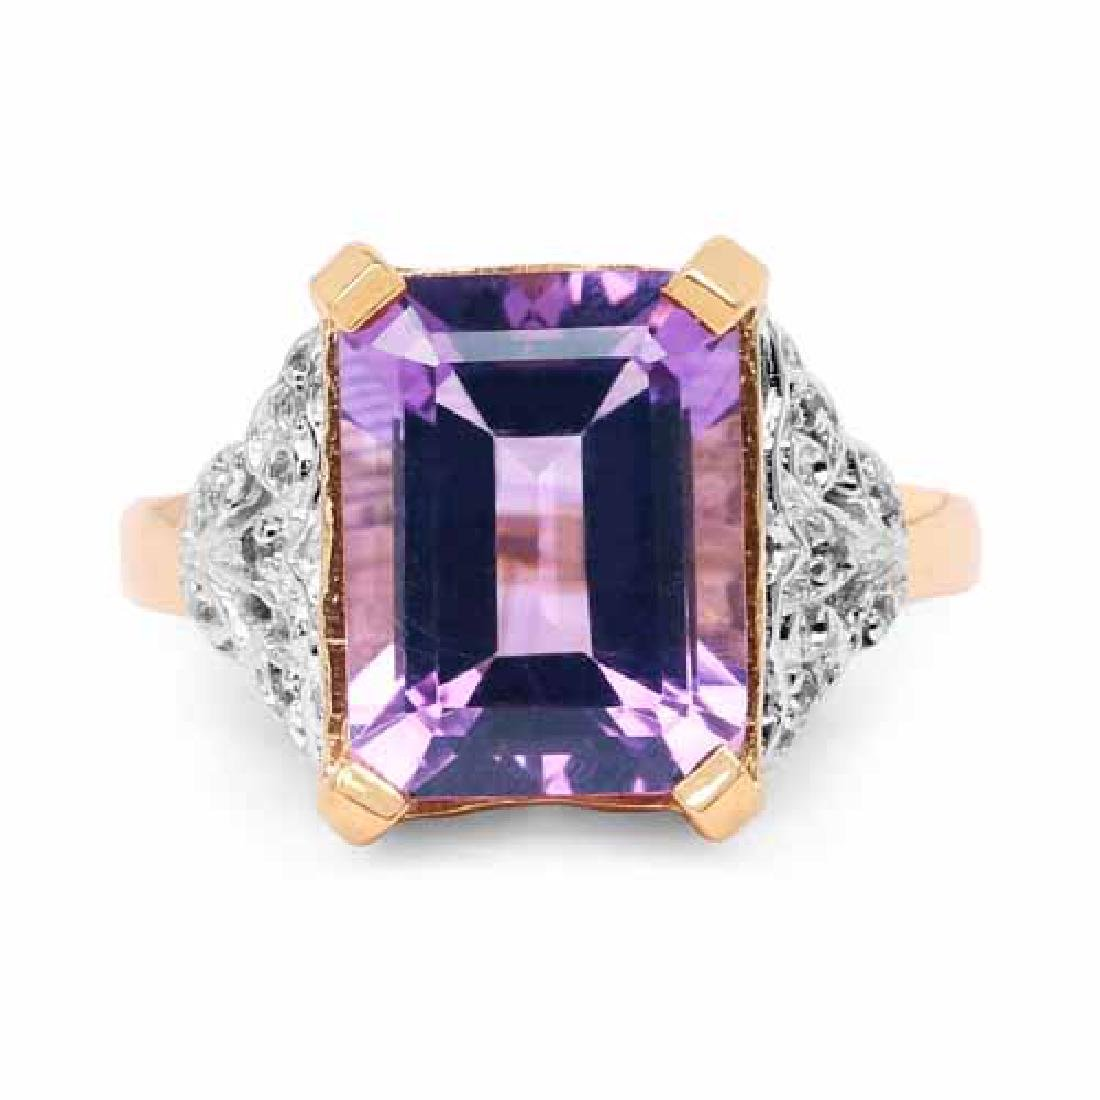 14K Yellow Gold Plated 4.95 Carat Genuine Amethyst and